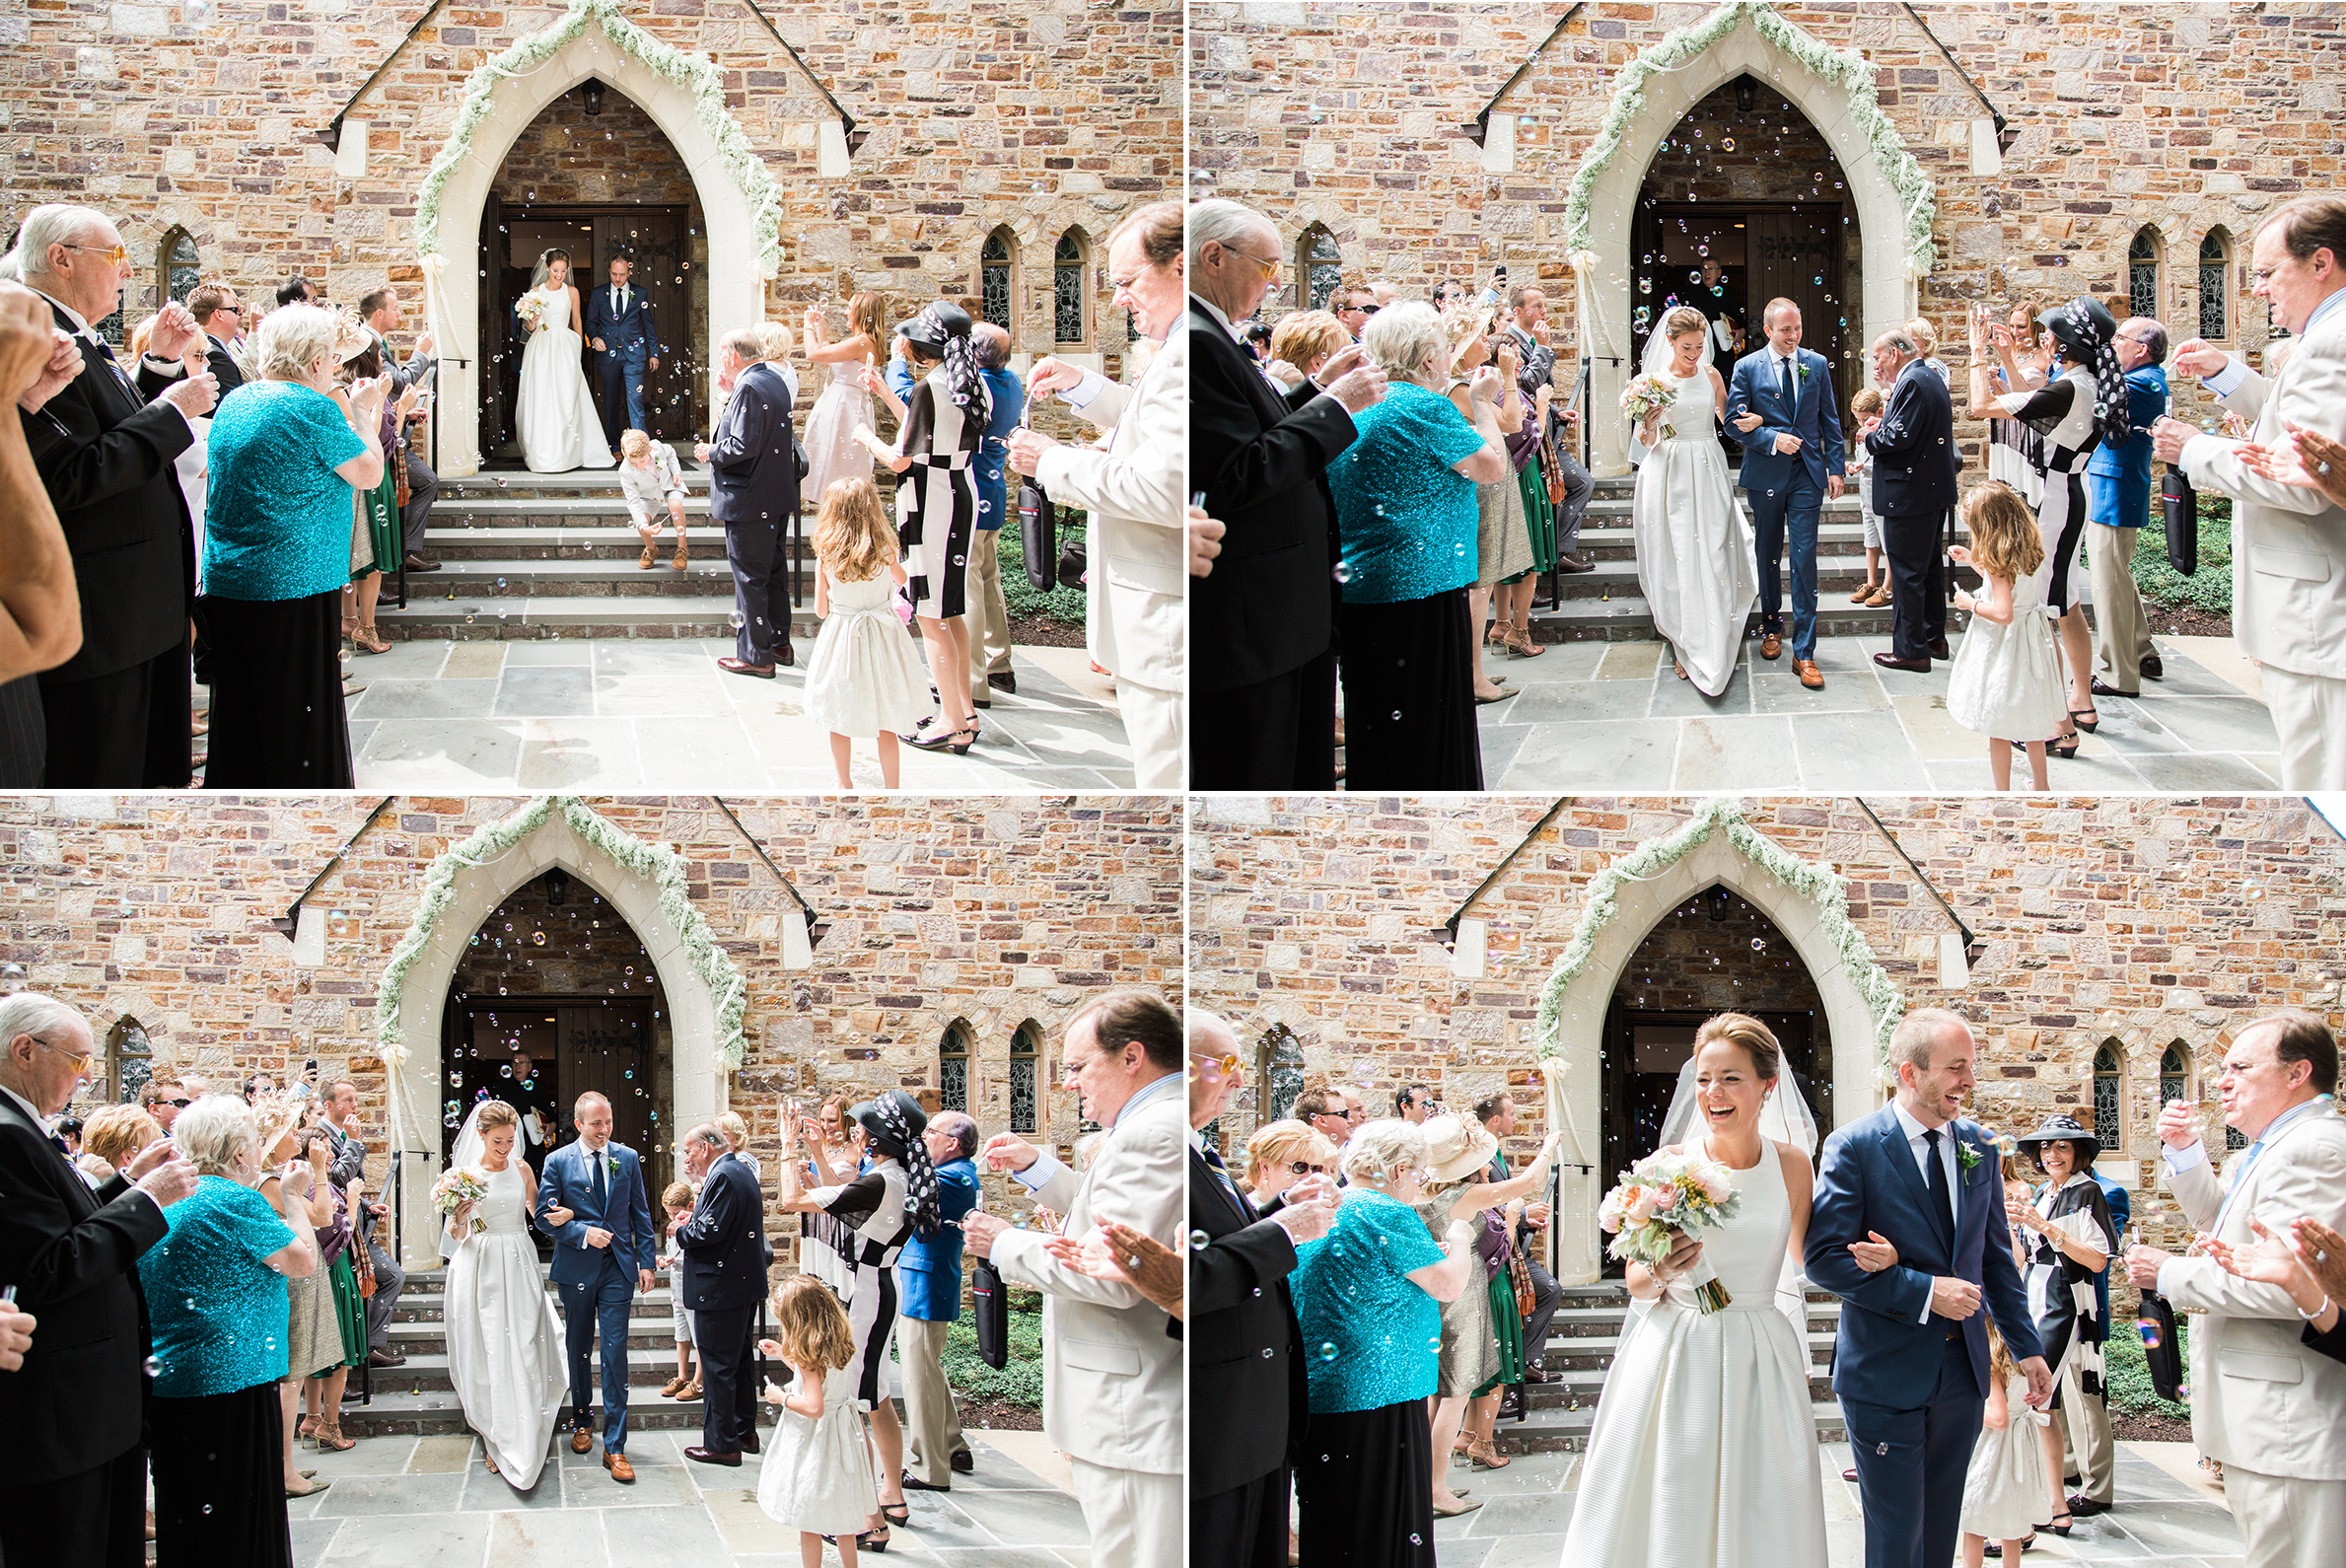 Bubble blowing guests greet Courtney and Dave after their Philadelphia Wedding. Photographed by Hudson Nichols photography.